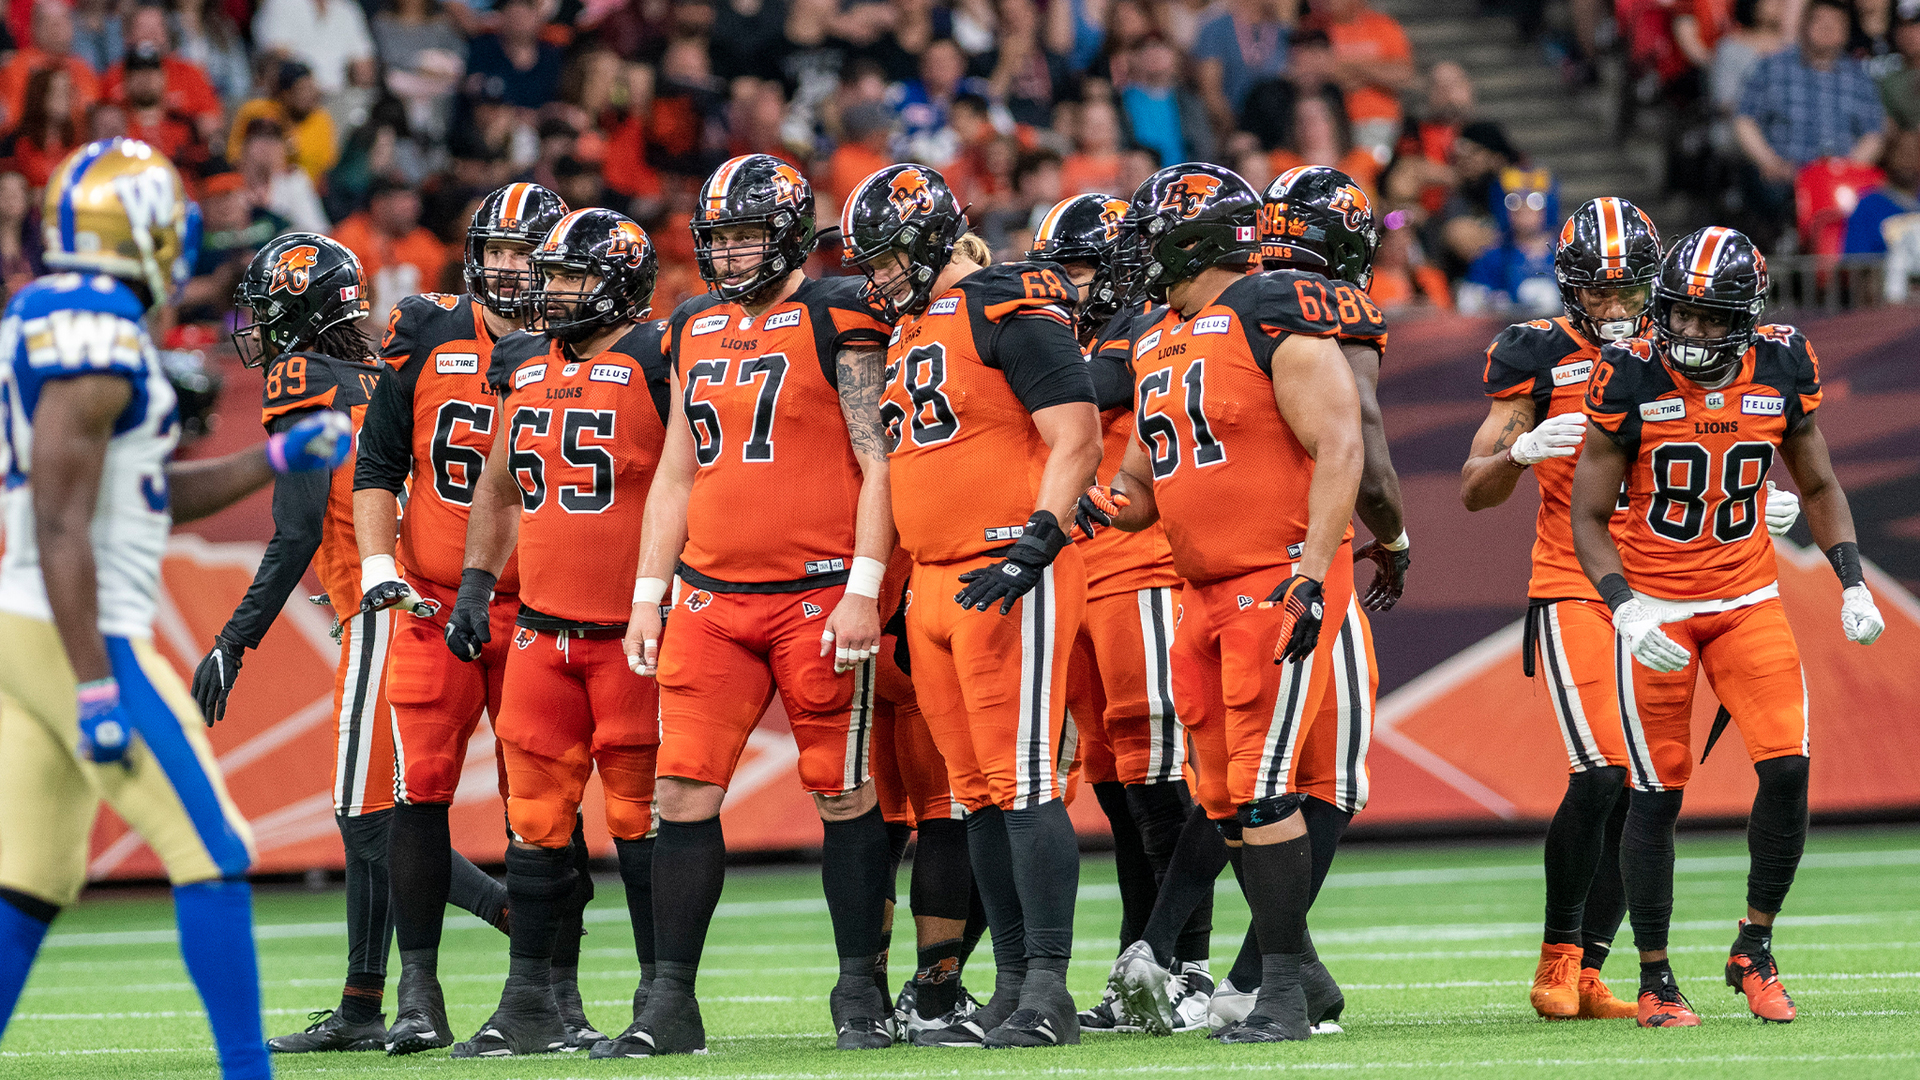 2021 Team Preview: BC Lions